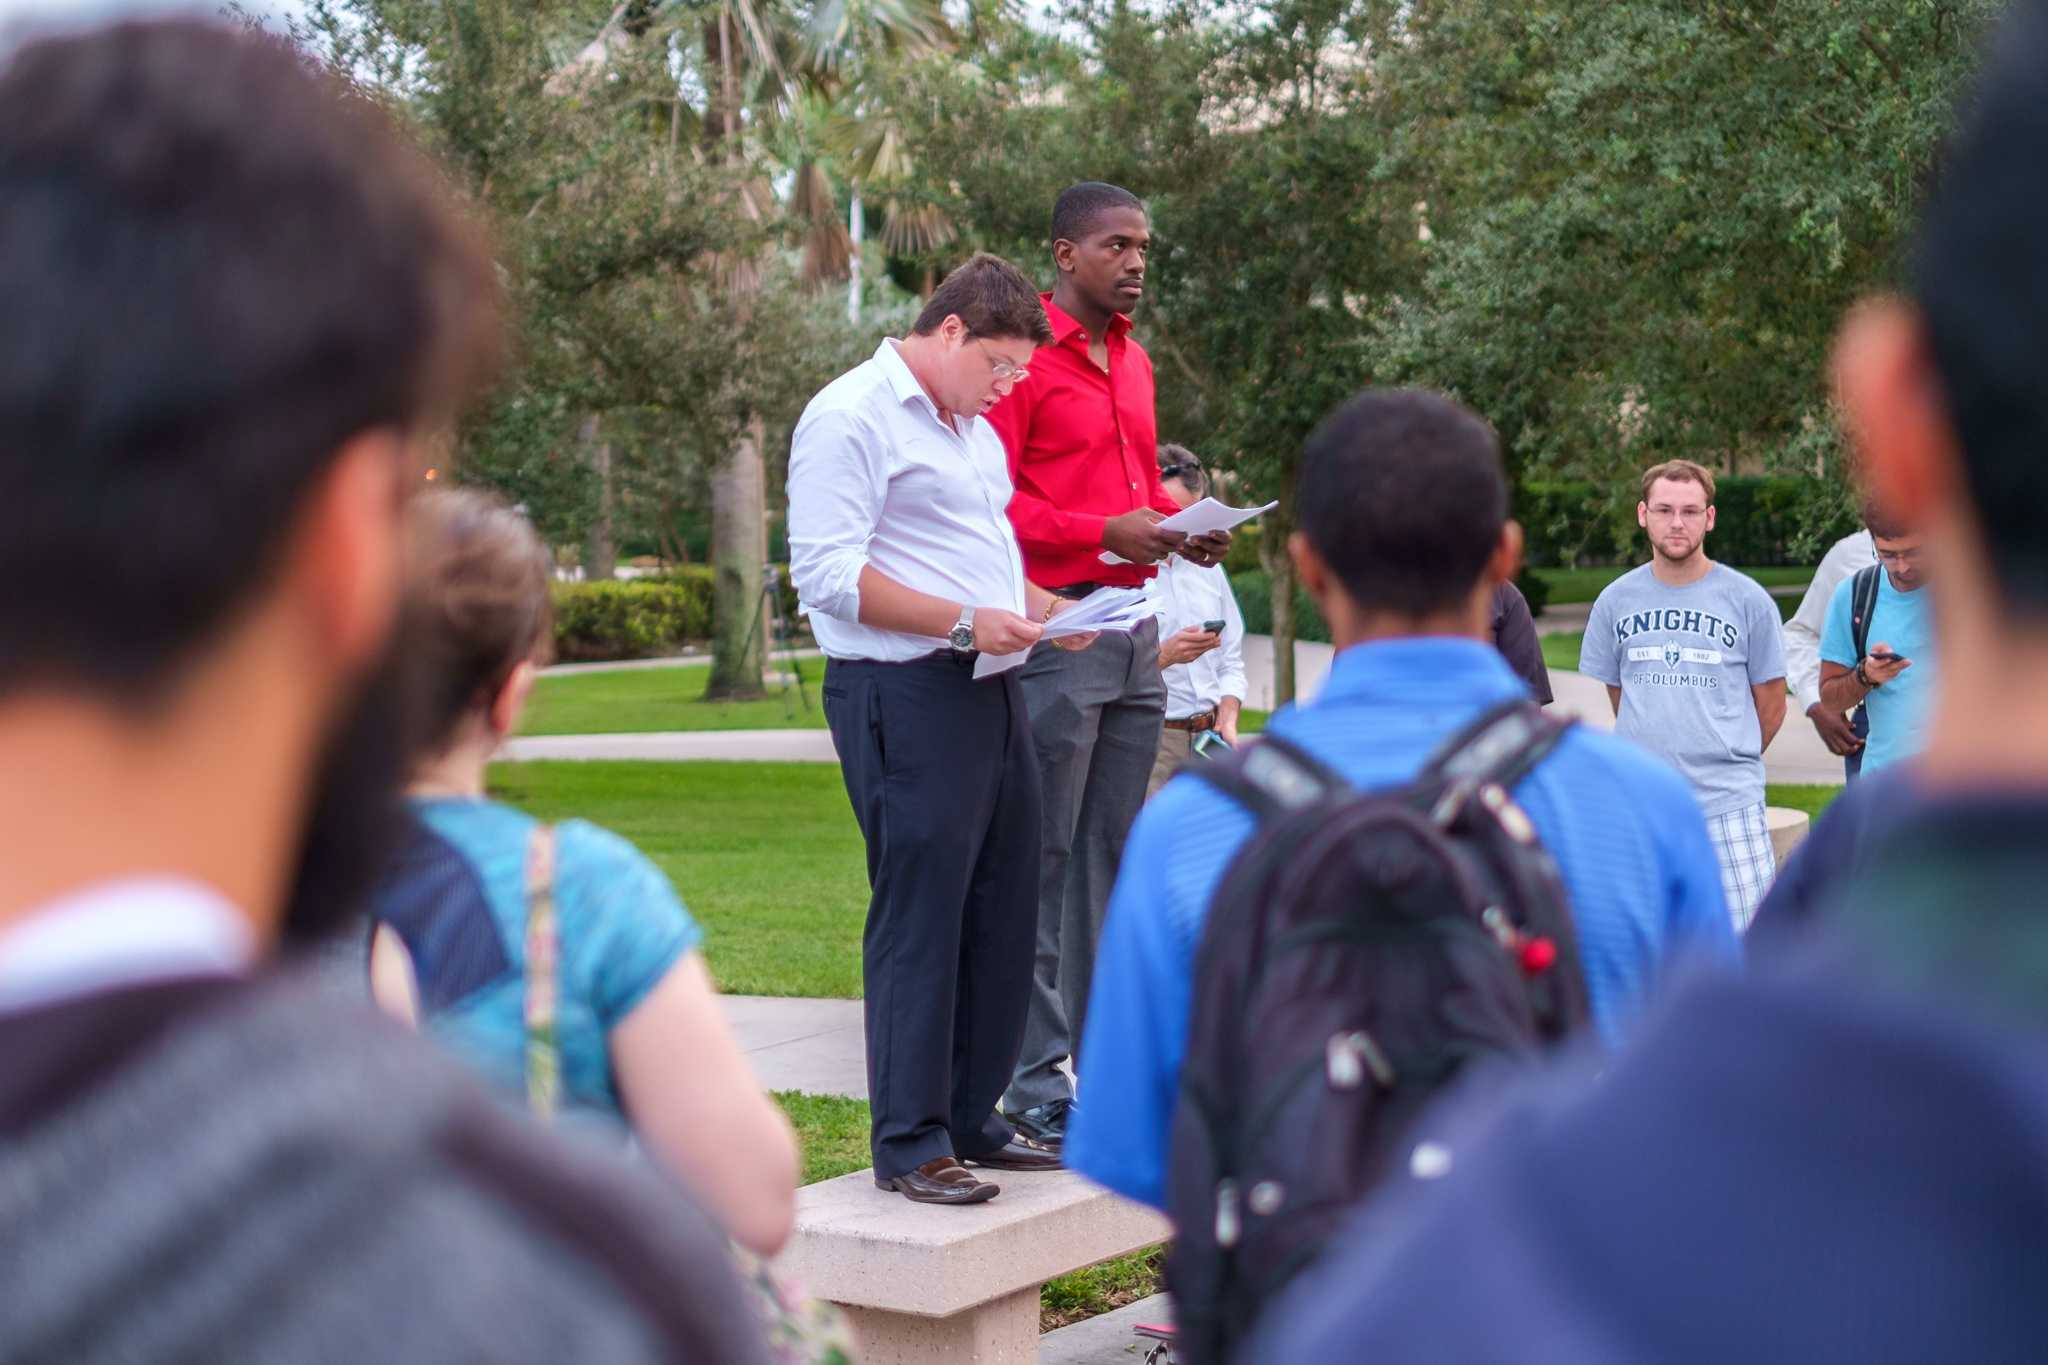 Zachary Pastor (left), senior studying prelaw criminal justice, gives a speech in front of 50 attendance during the Nov. 16 vigil for Paris. | Mohammed F Emran, Asst. Creative Director